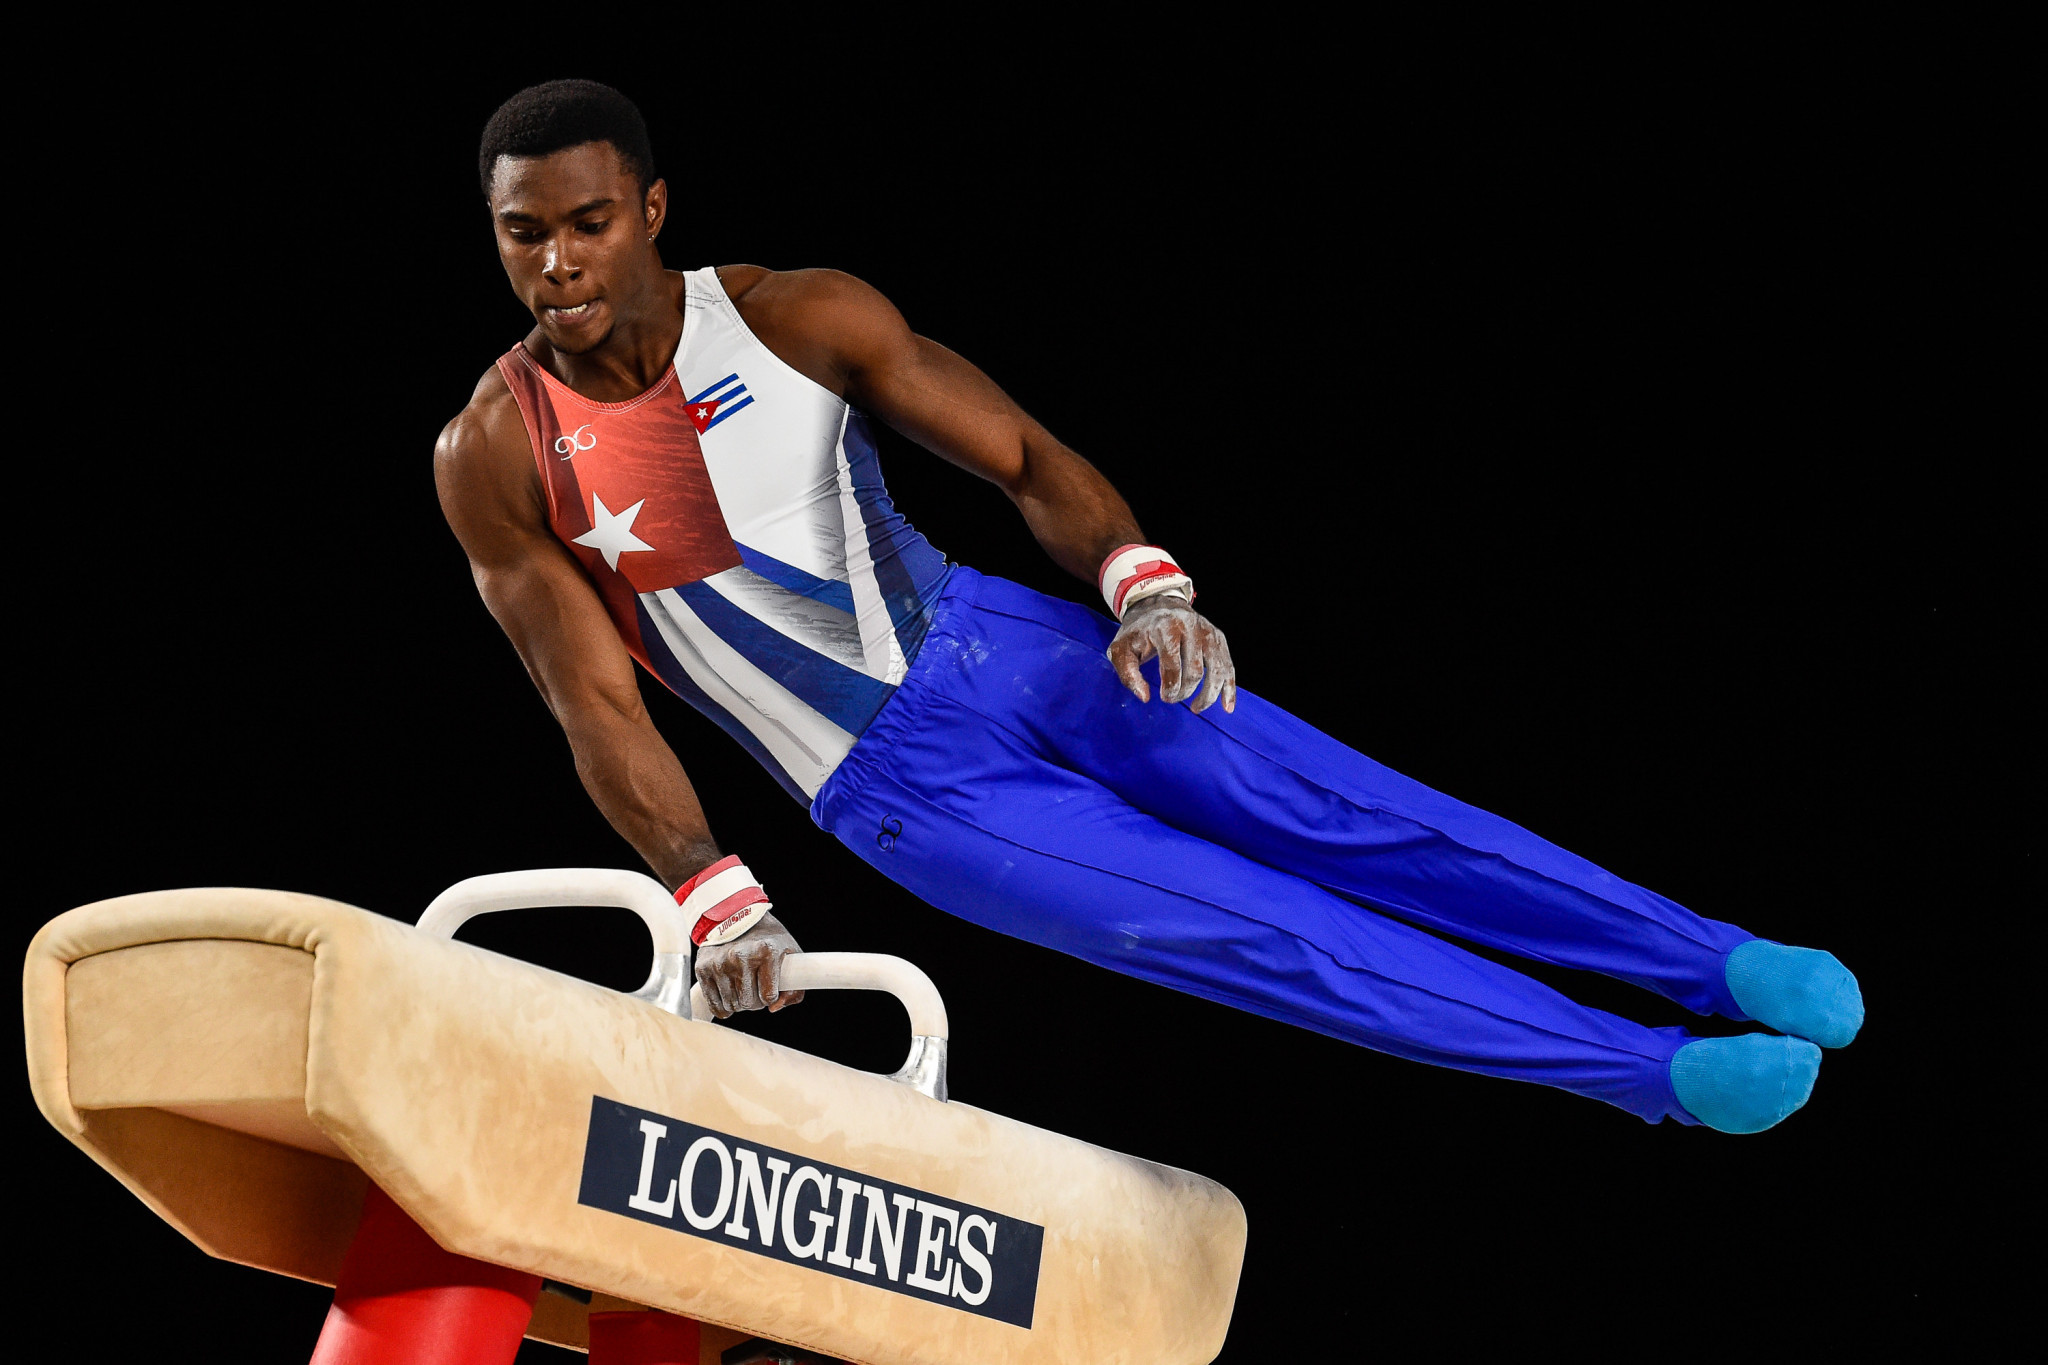 Cuba's Larduet tops pommel horse qualification standings at FIG World Challenge Cup in Guimarães